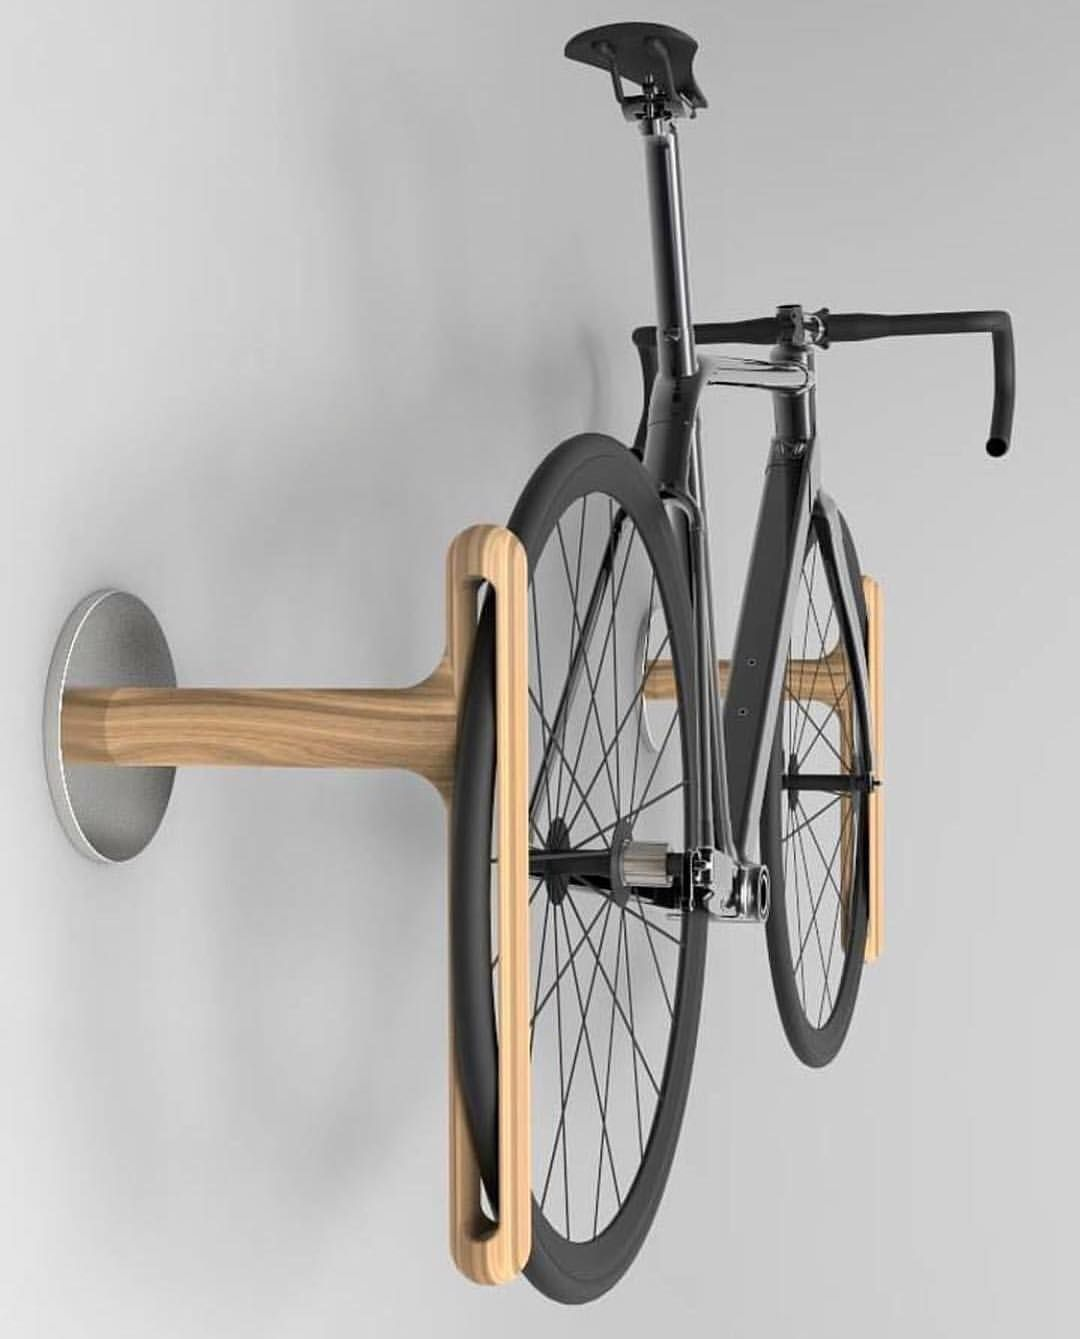 bicycle wall mount by alex yoo gävle almondesign wall on wall mount id=36067